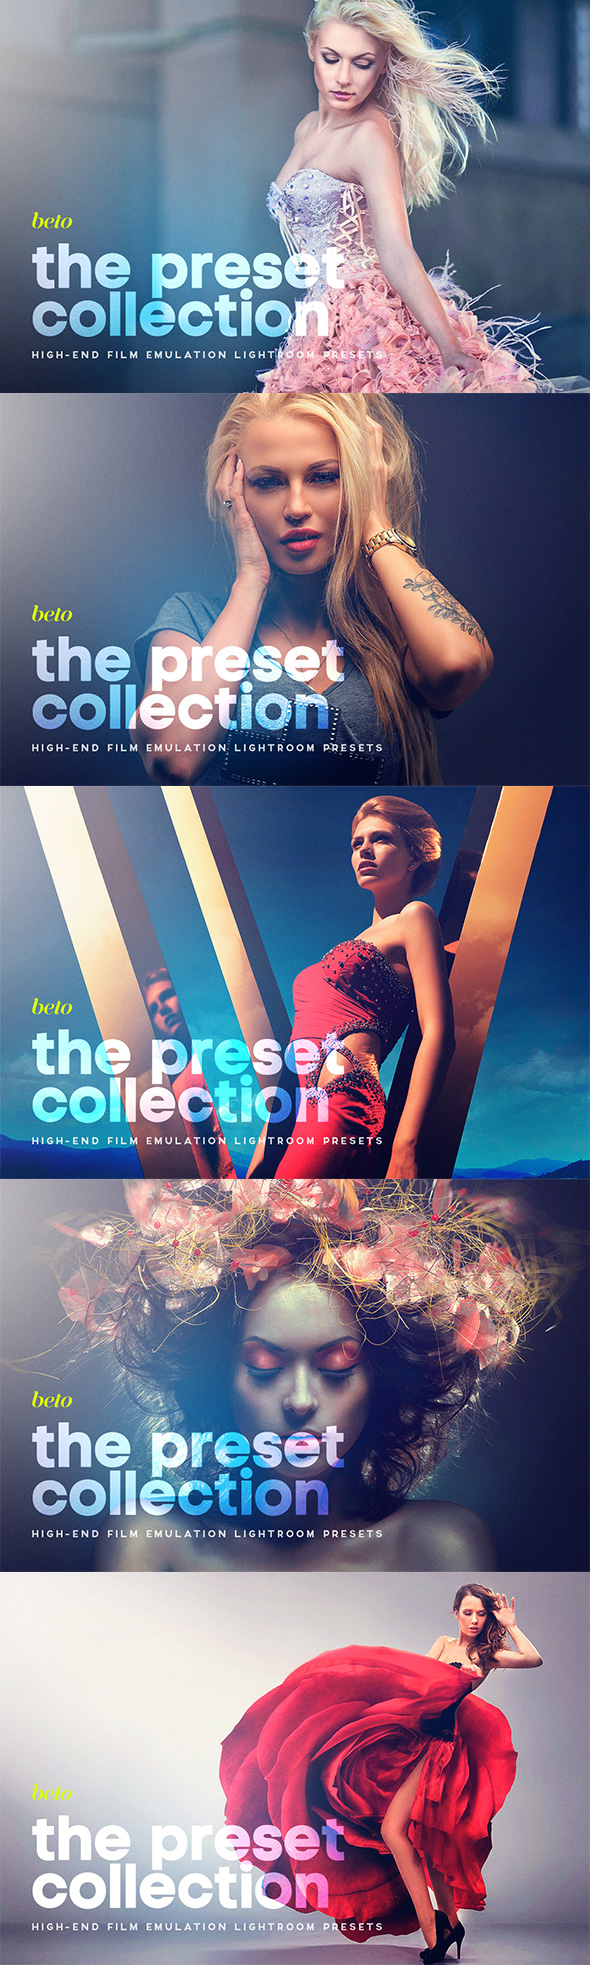 The Preset Collection - Lightroom Presets Add-ons